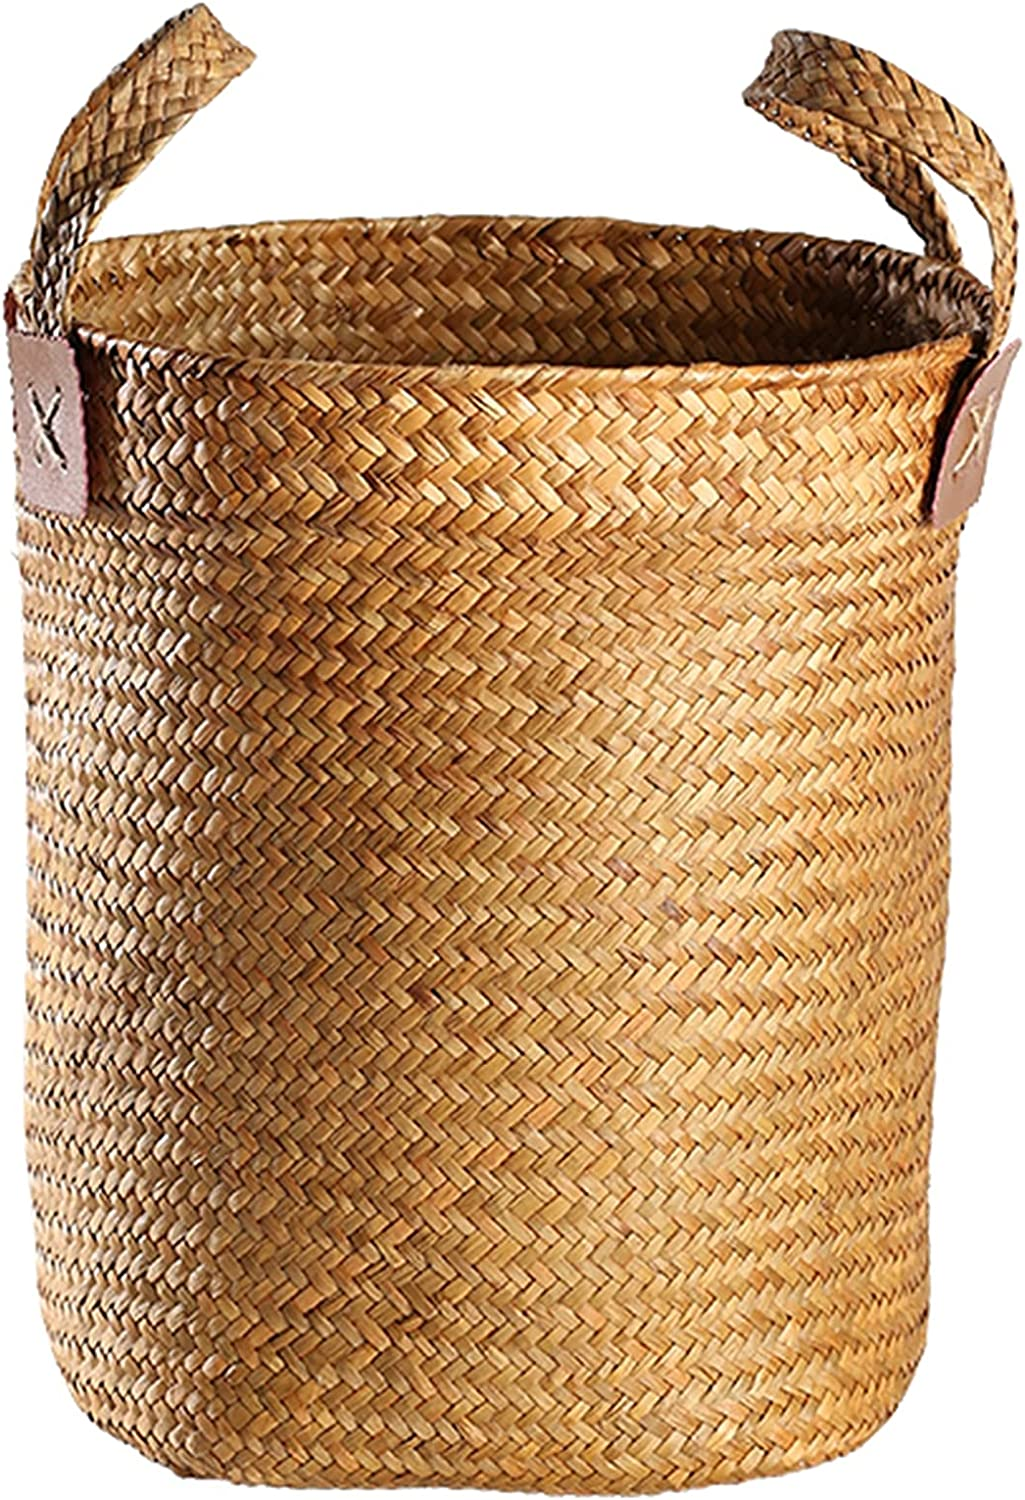 XMJM Seagrass Woven Max 62% OFF Basket for Baskets H Decorative Plants with Max 65% OFF